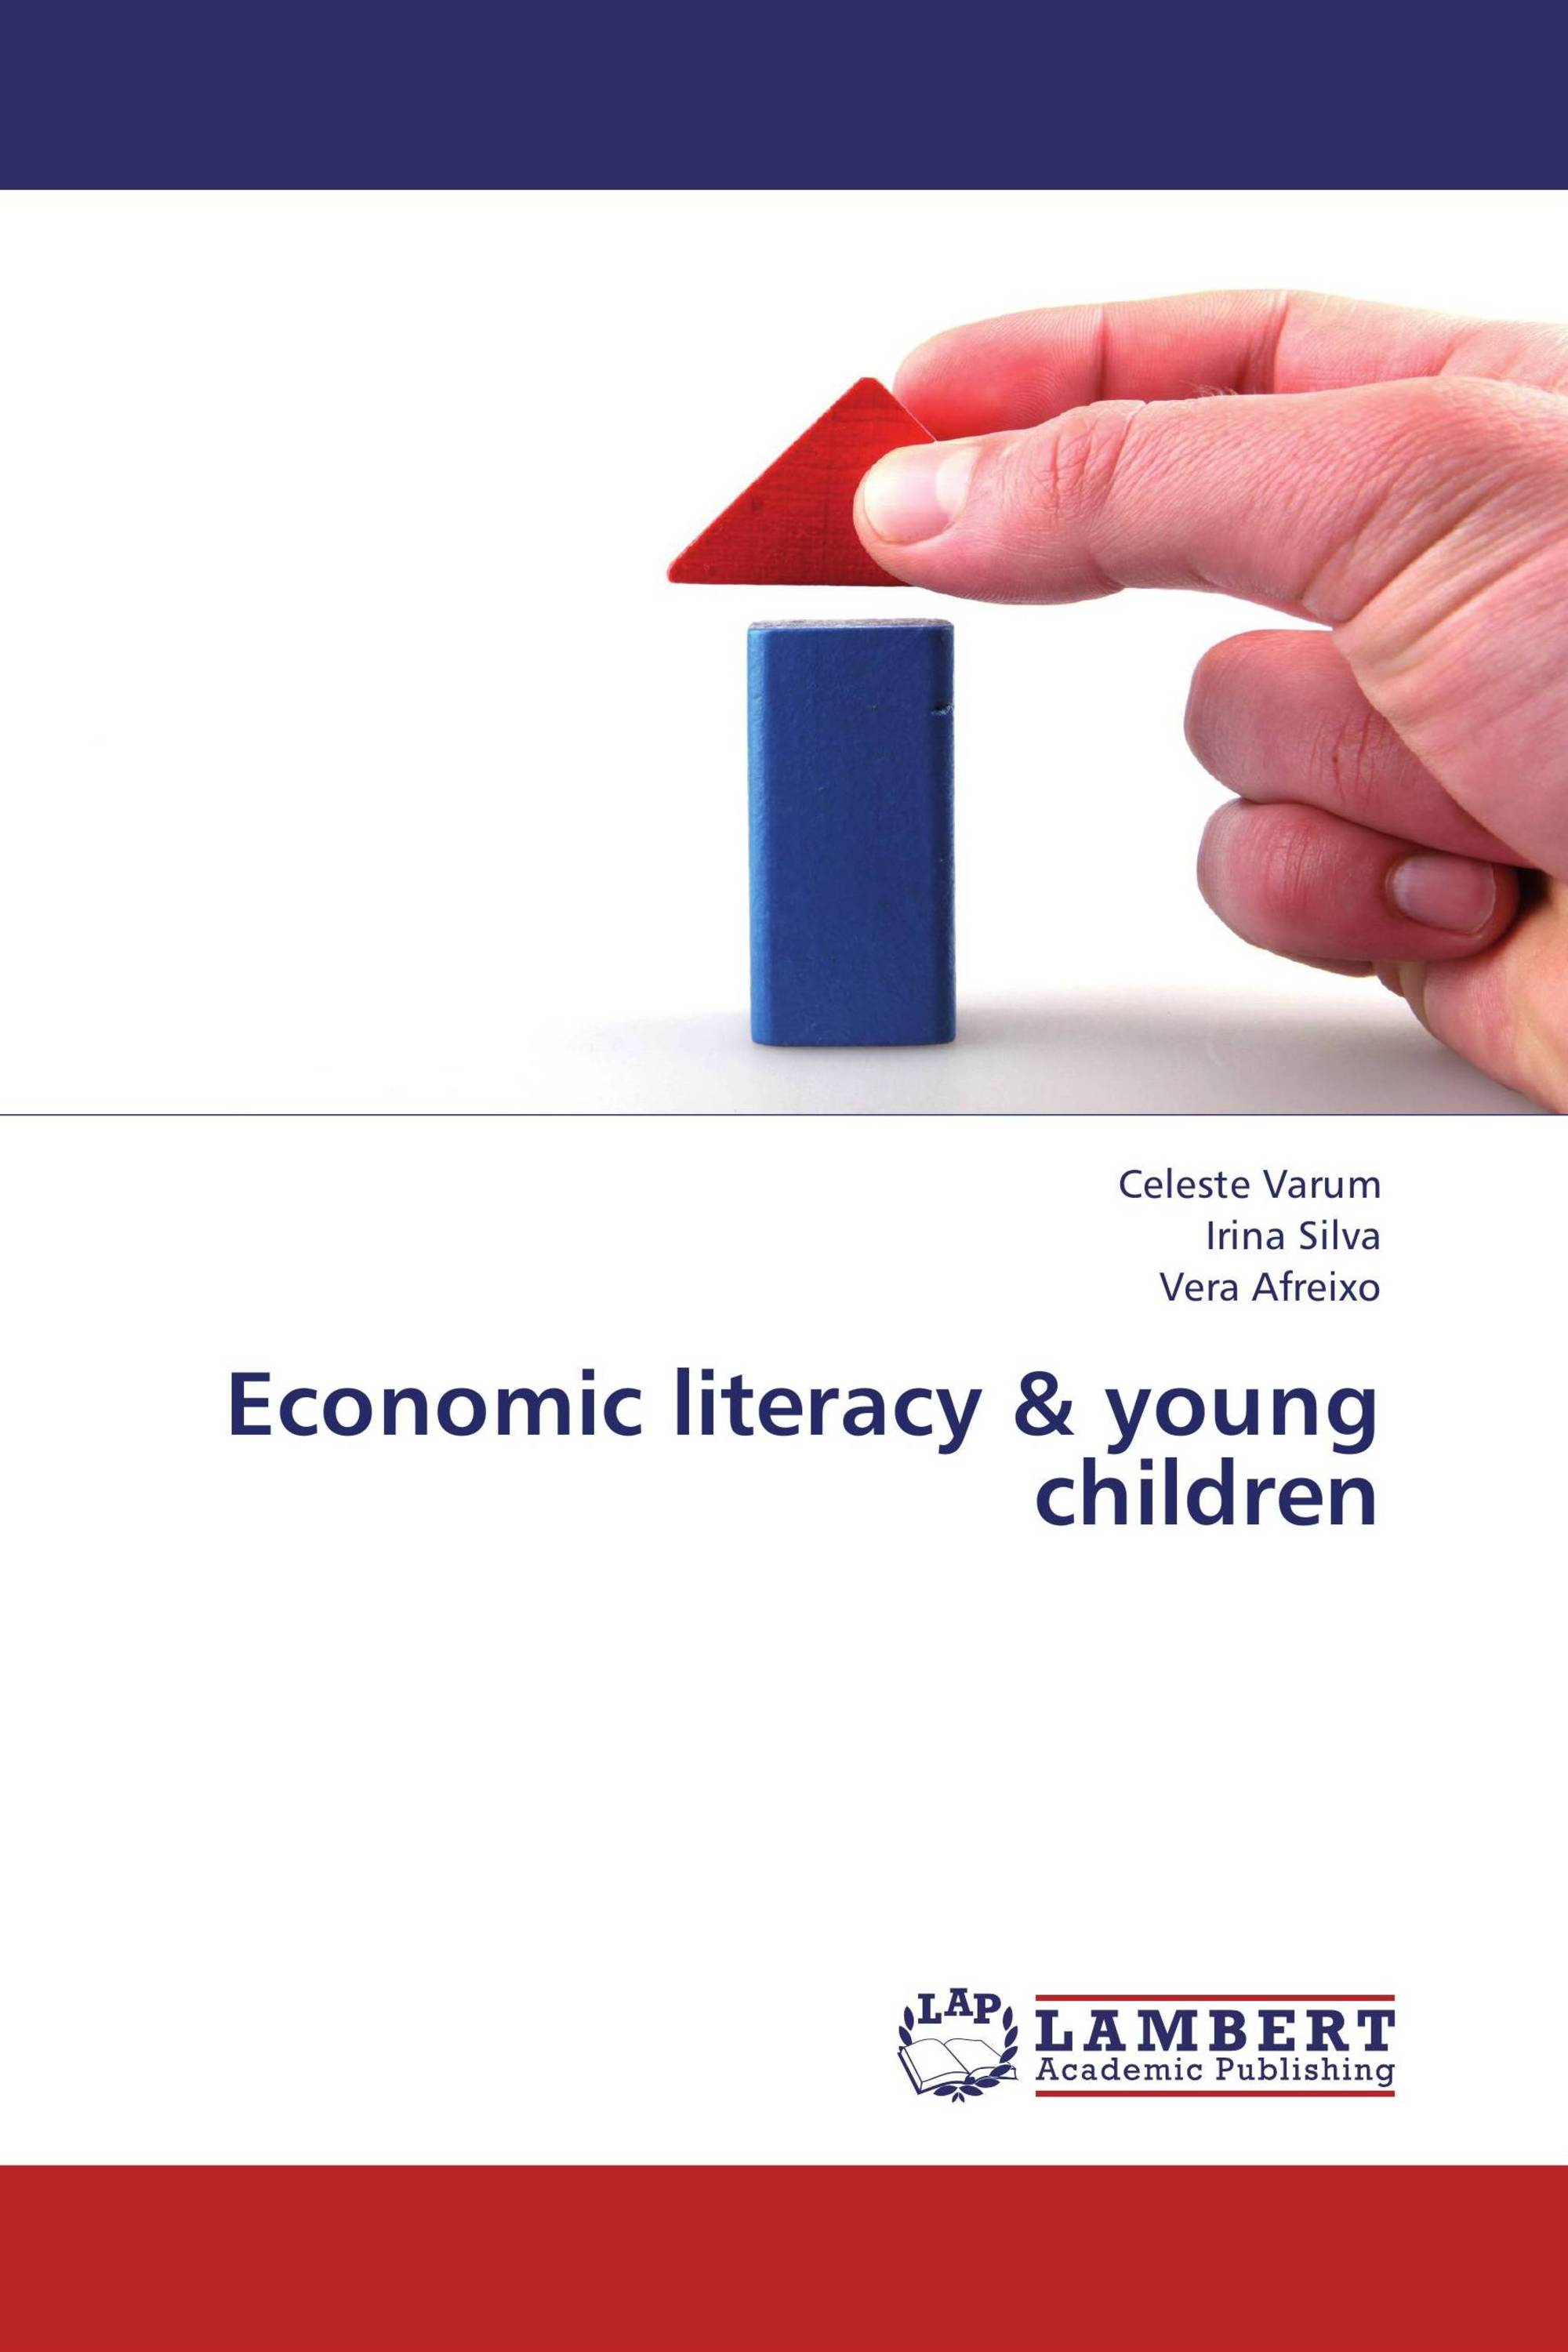 Economic literacy &  young children